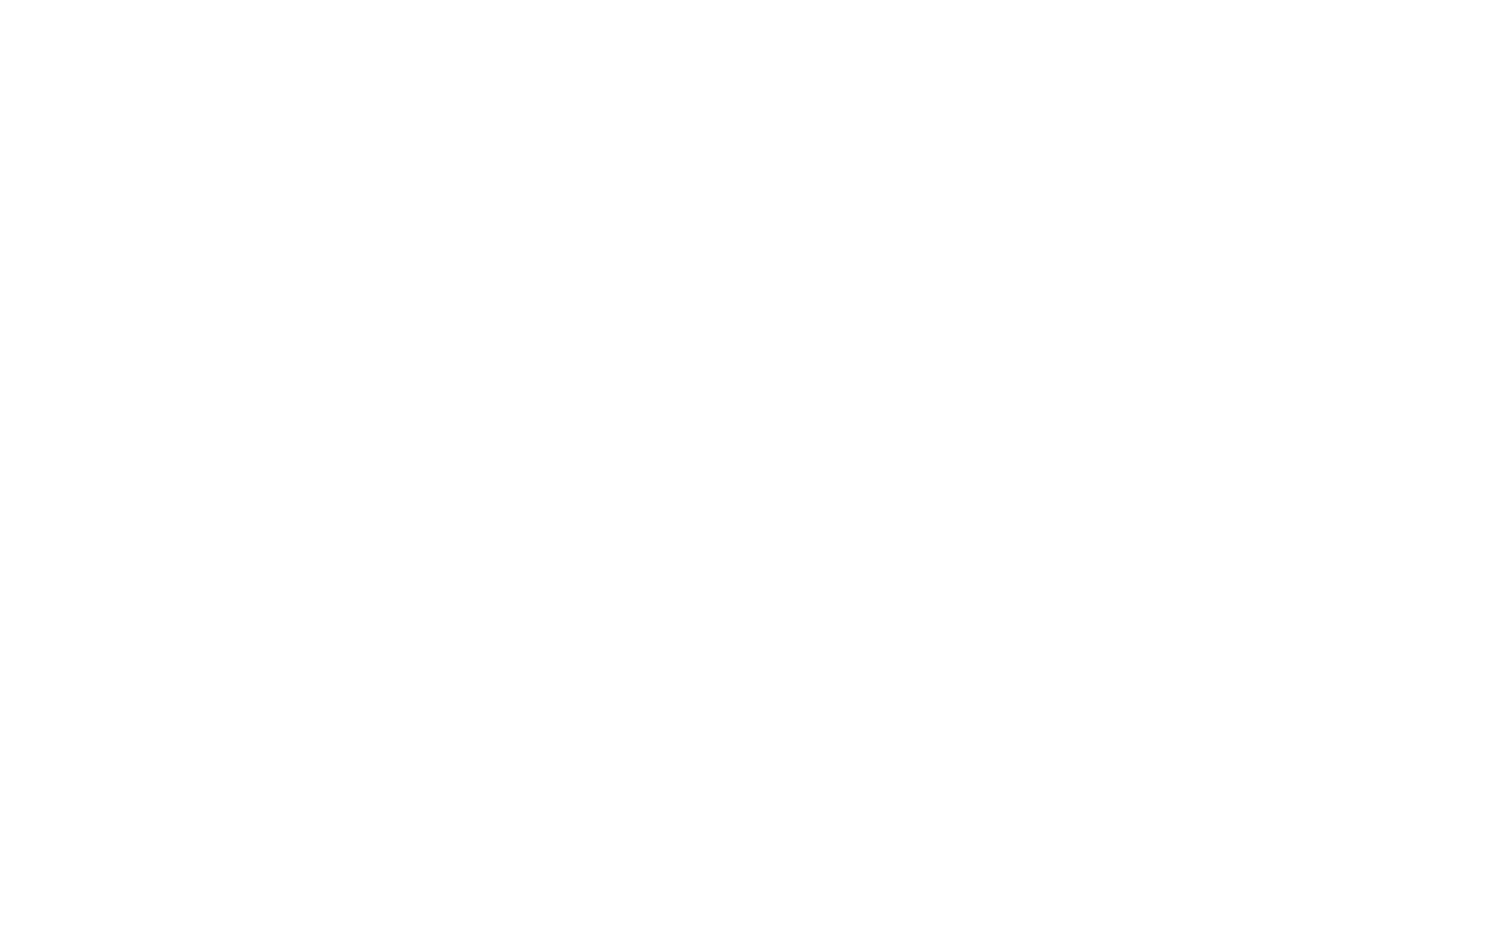 Connolly Asset Management